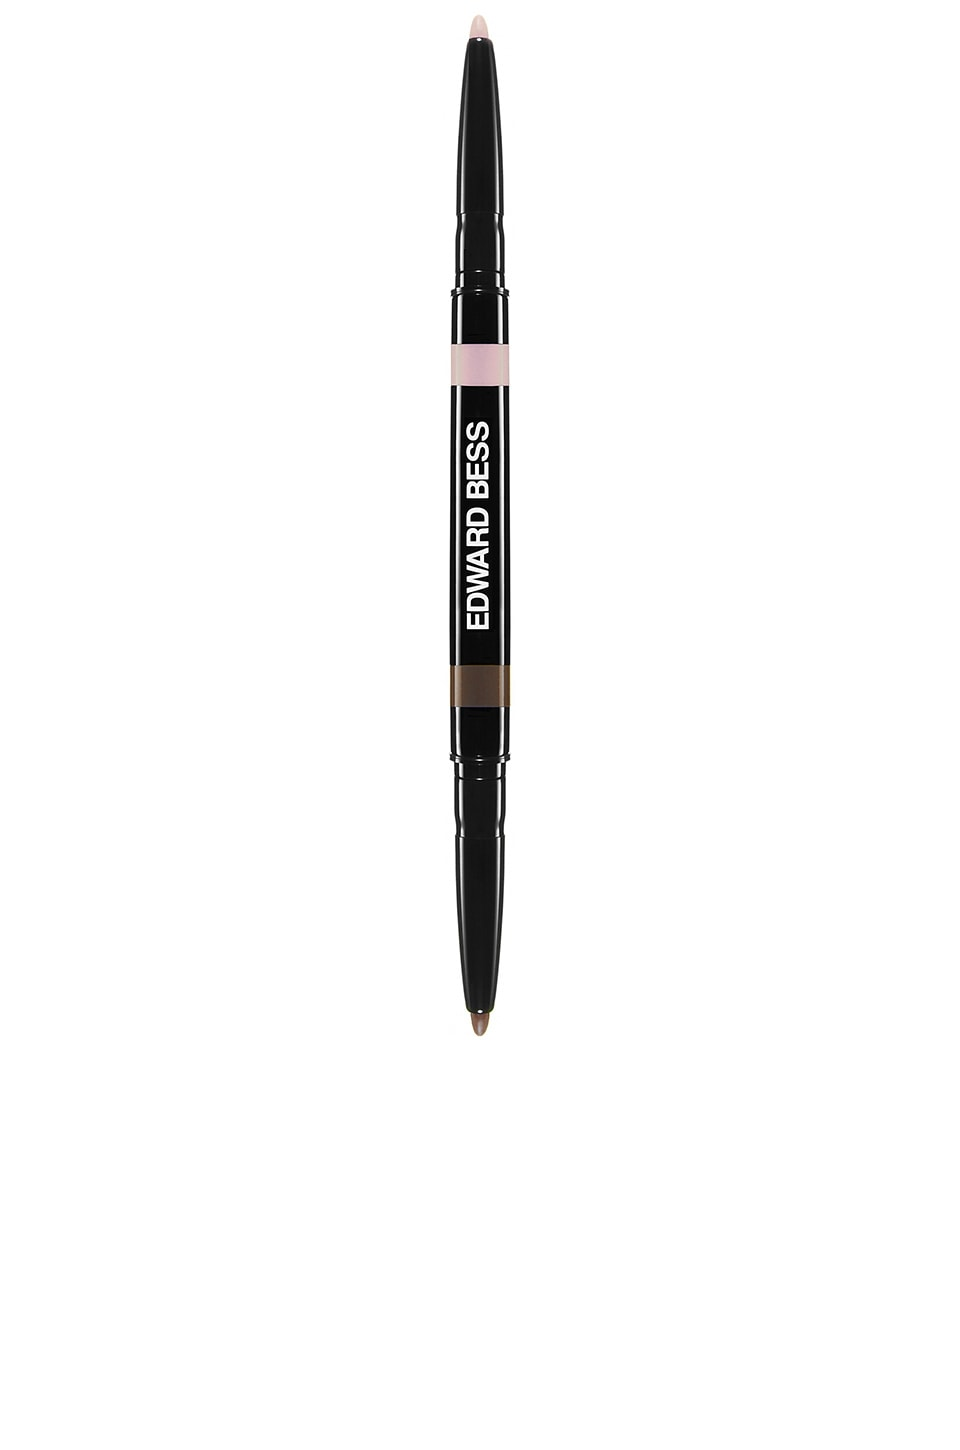 Edward Bess Fully Defined Eyebrow Duo in Rich